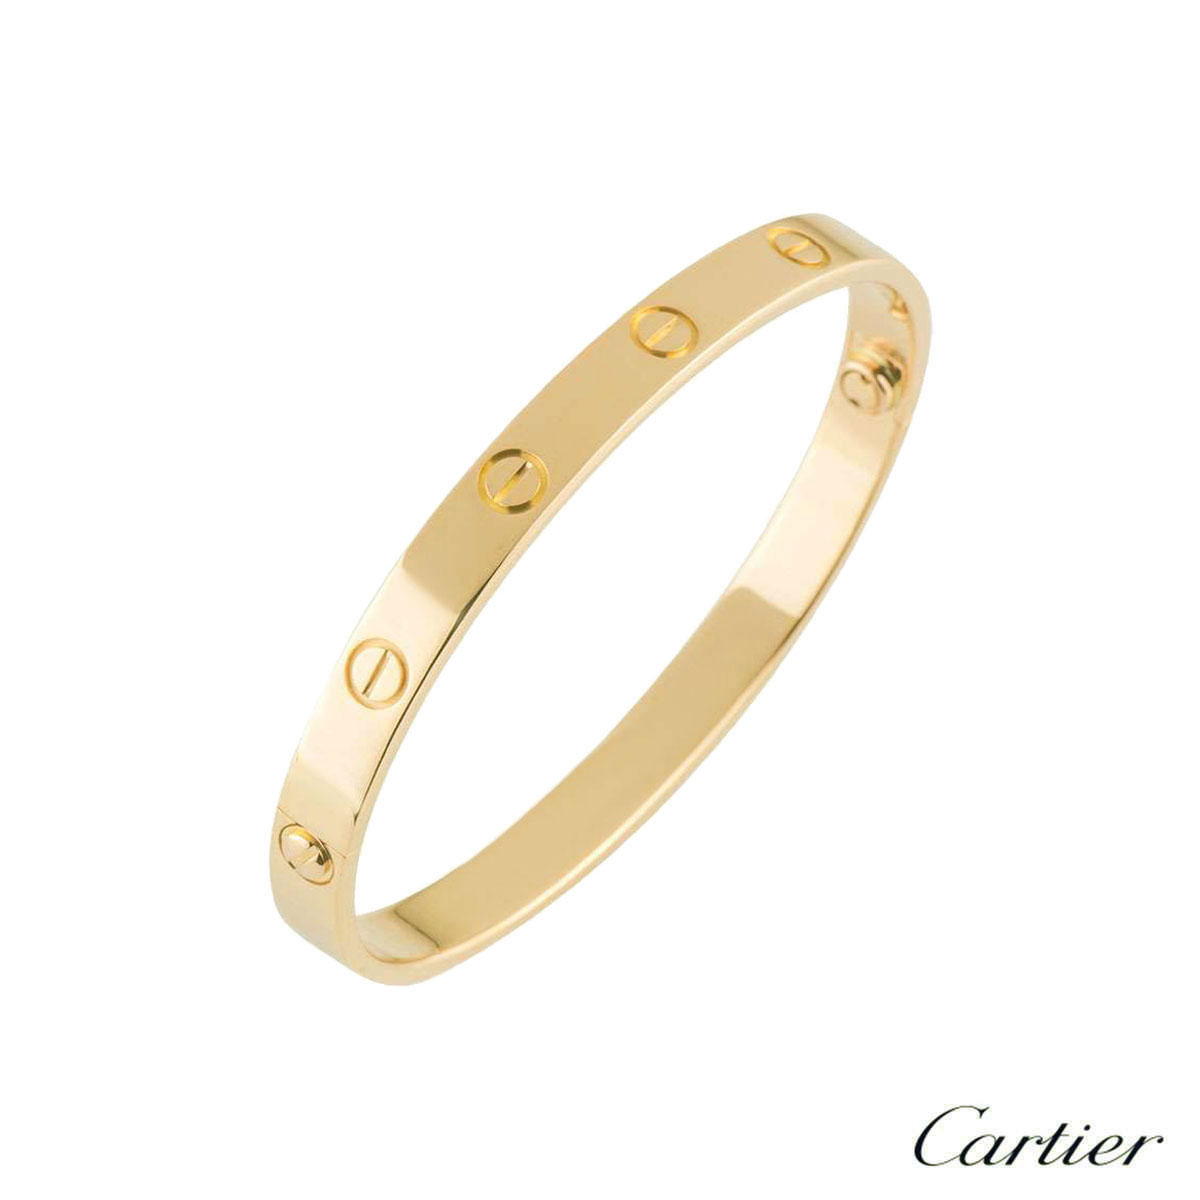 Cartier Yellow Gold Plain Love Bracelet Size 18 B6035518